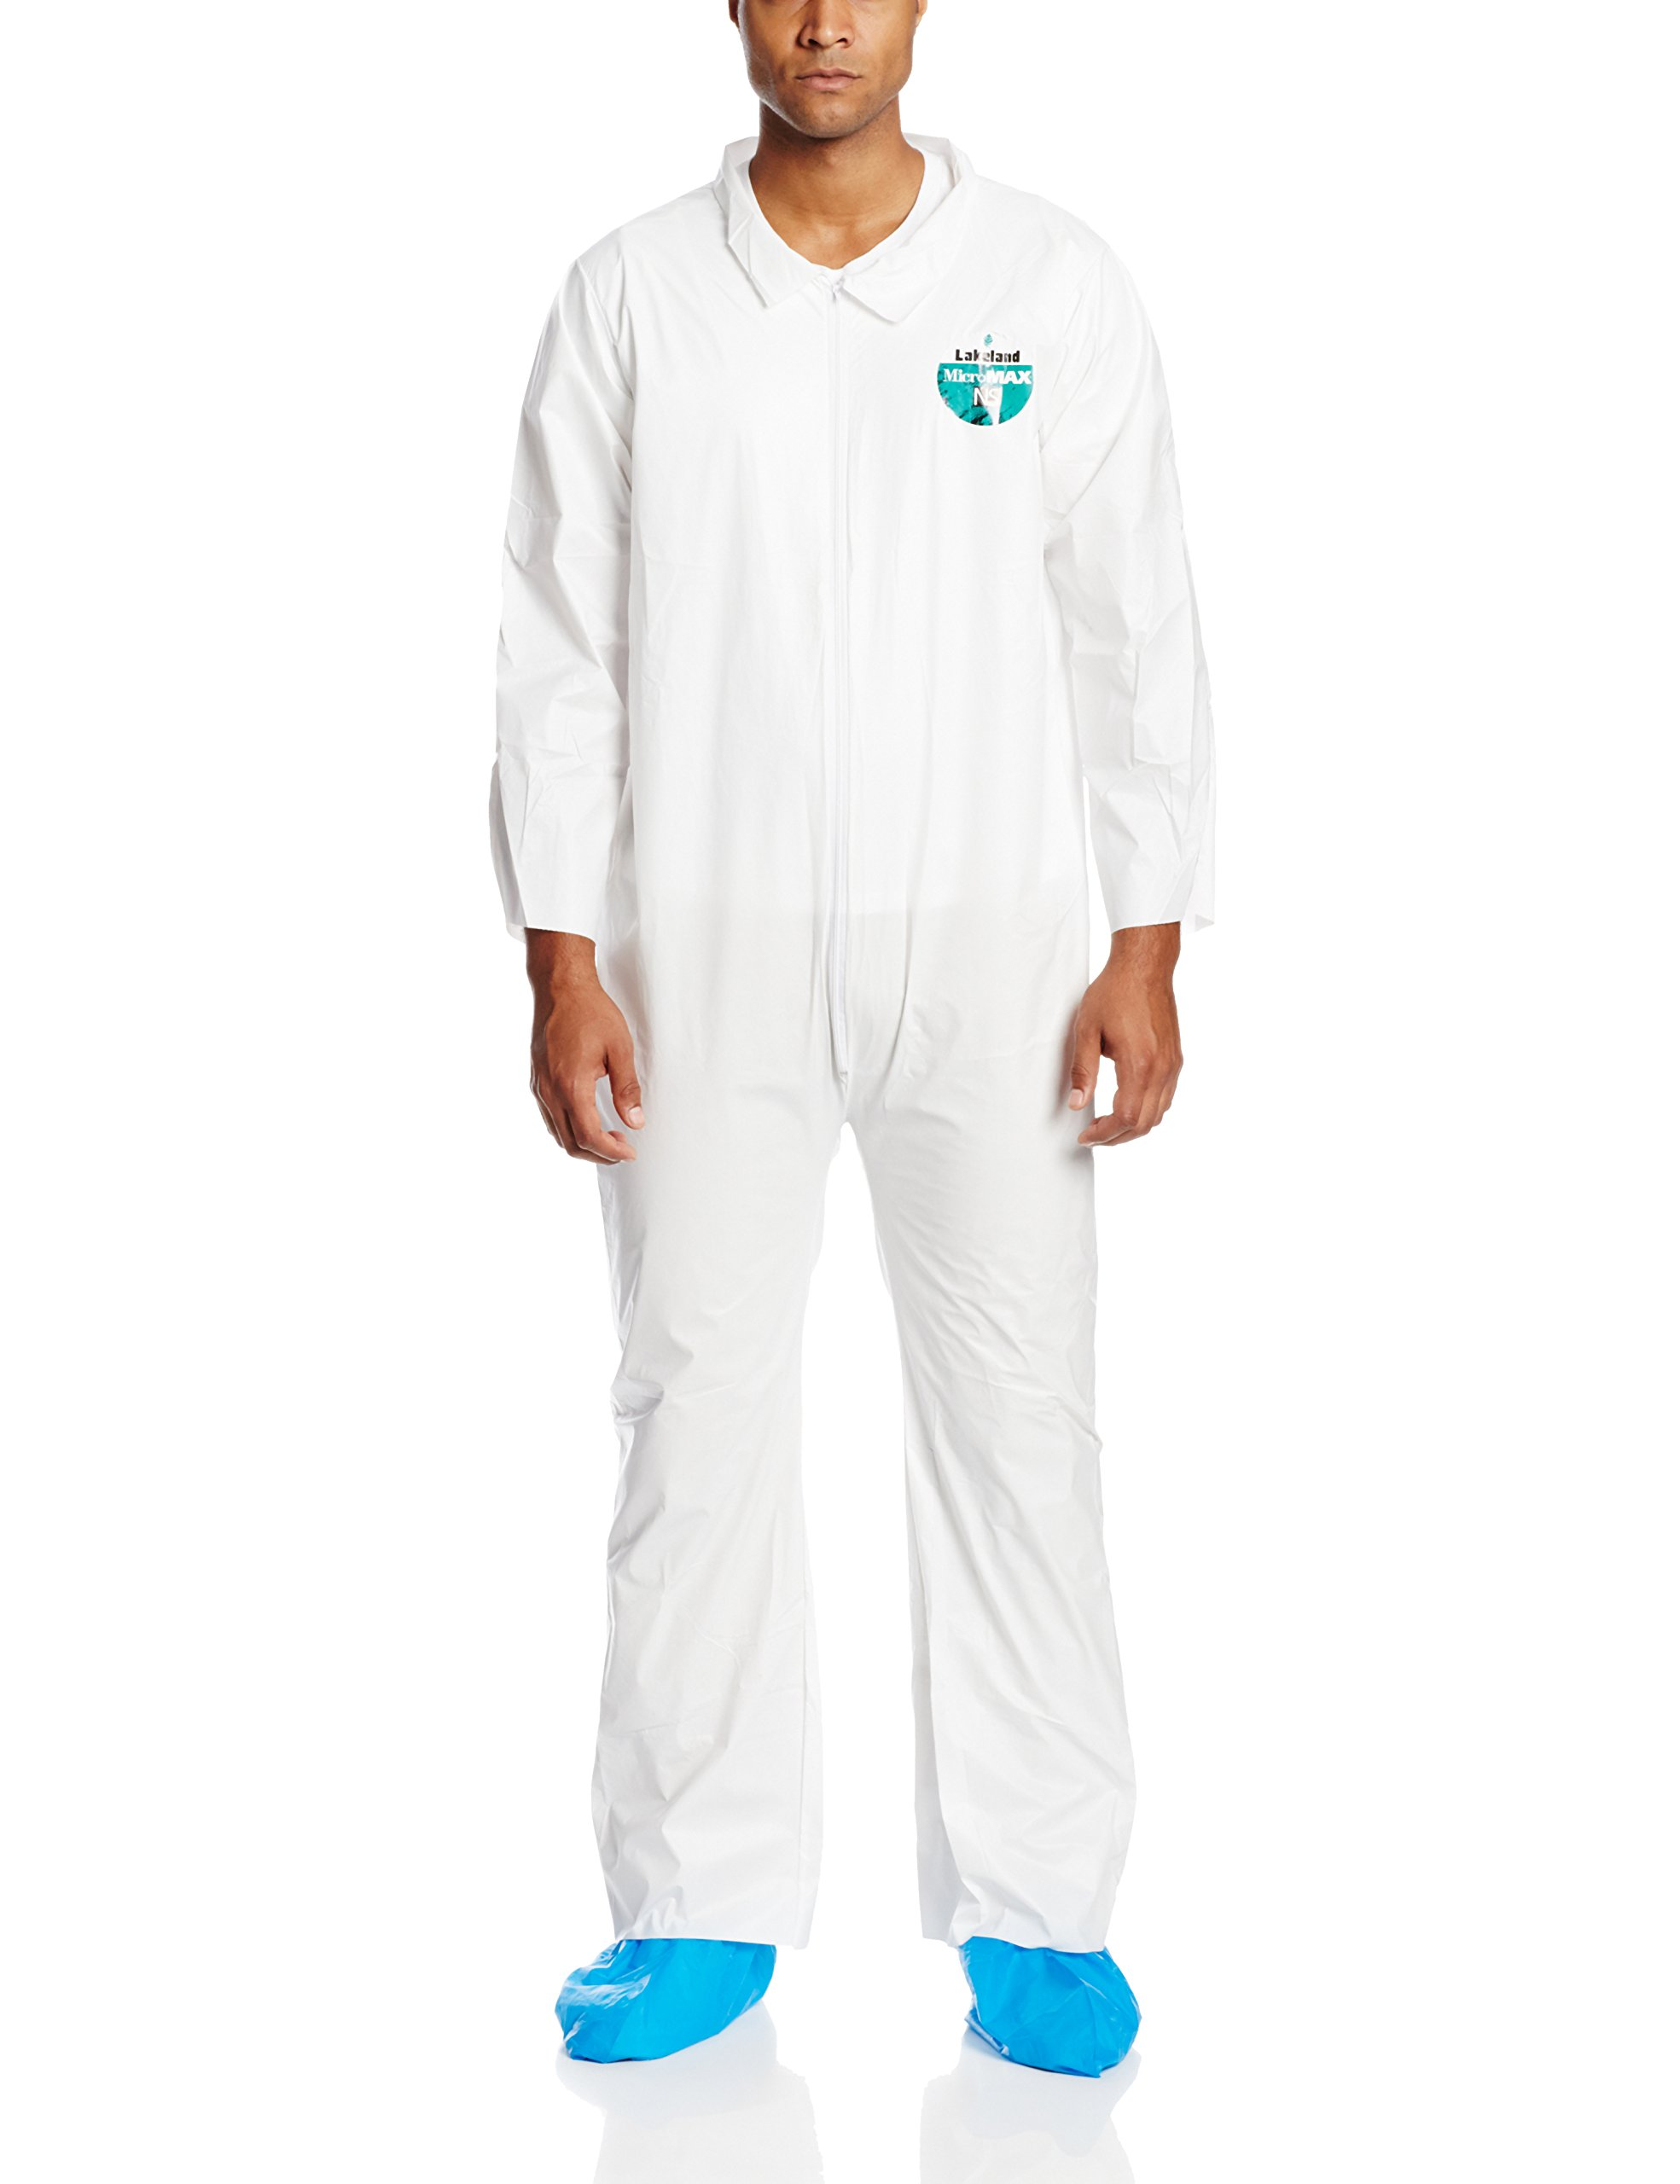 Lakeland MicroMax NS Microporous General Purpose Coverall, Open Cuff, 2X-Large, White (Case of 25) by Lakeland Industries Inc (Image #2)